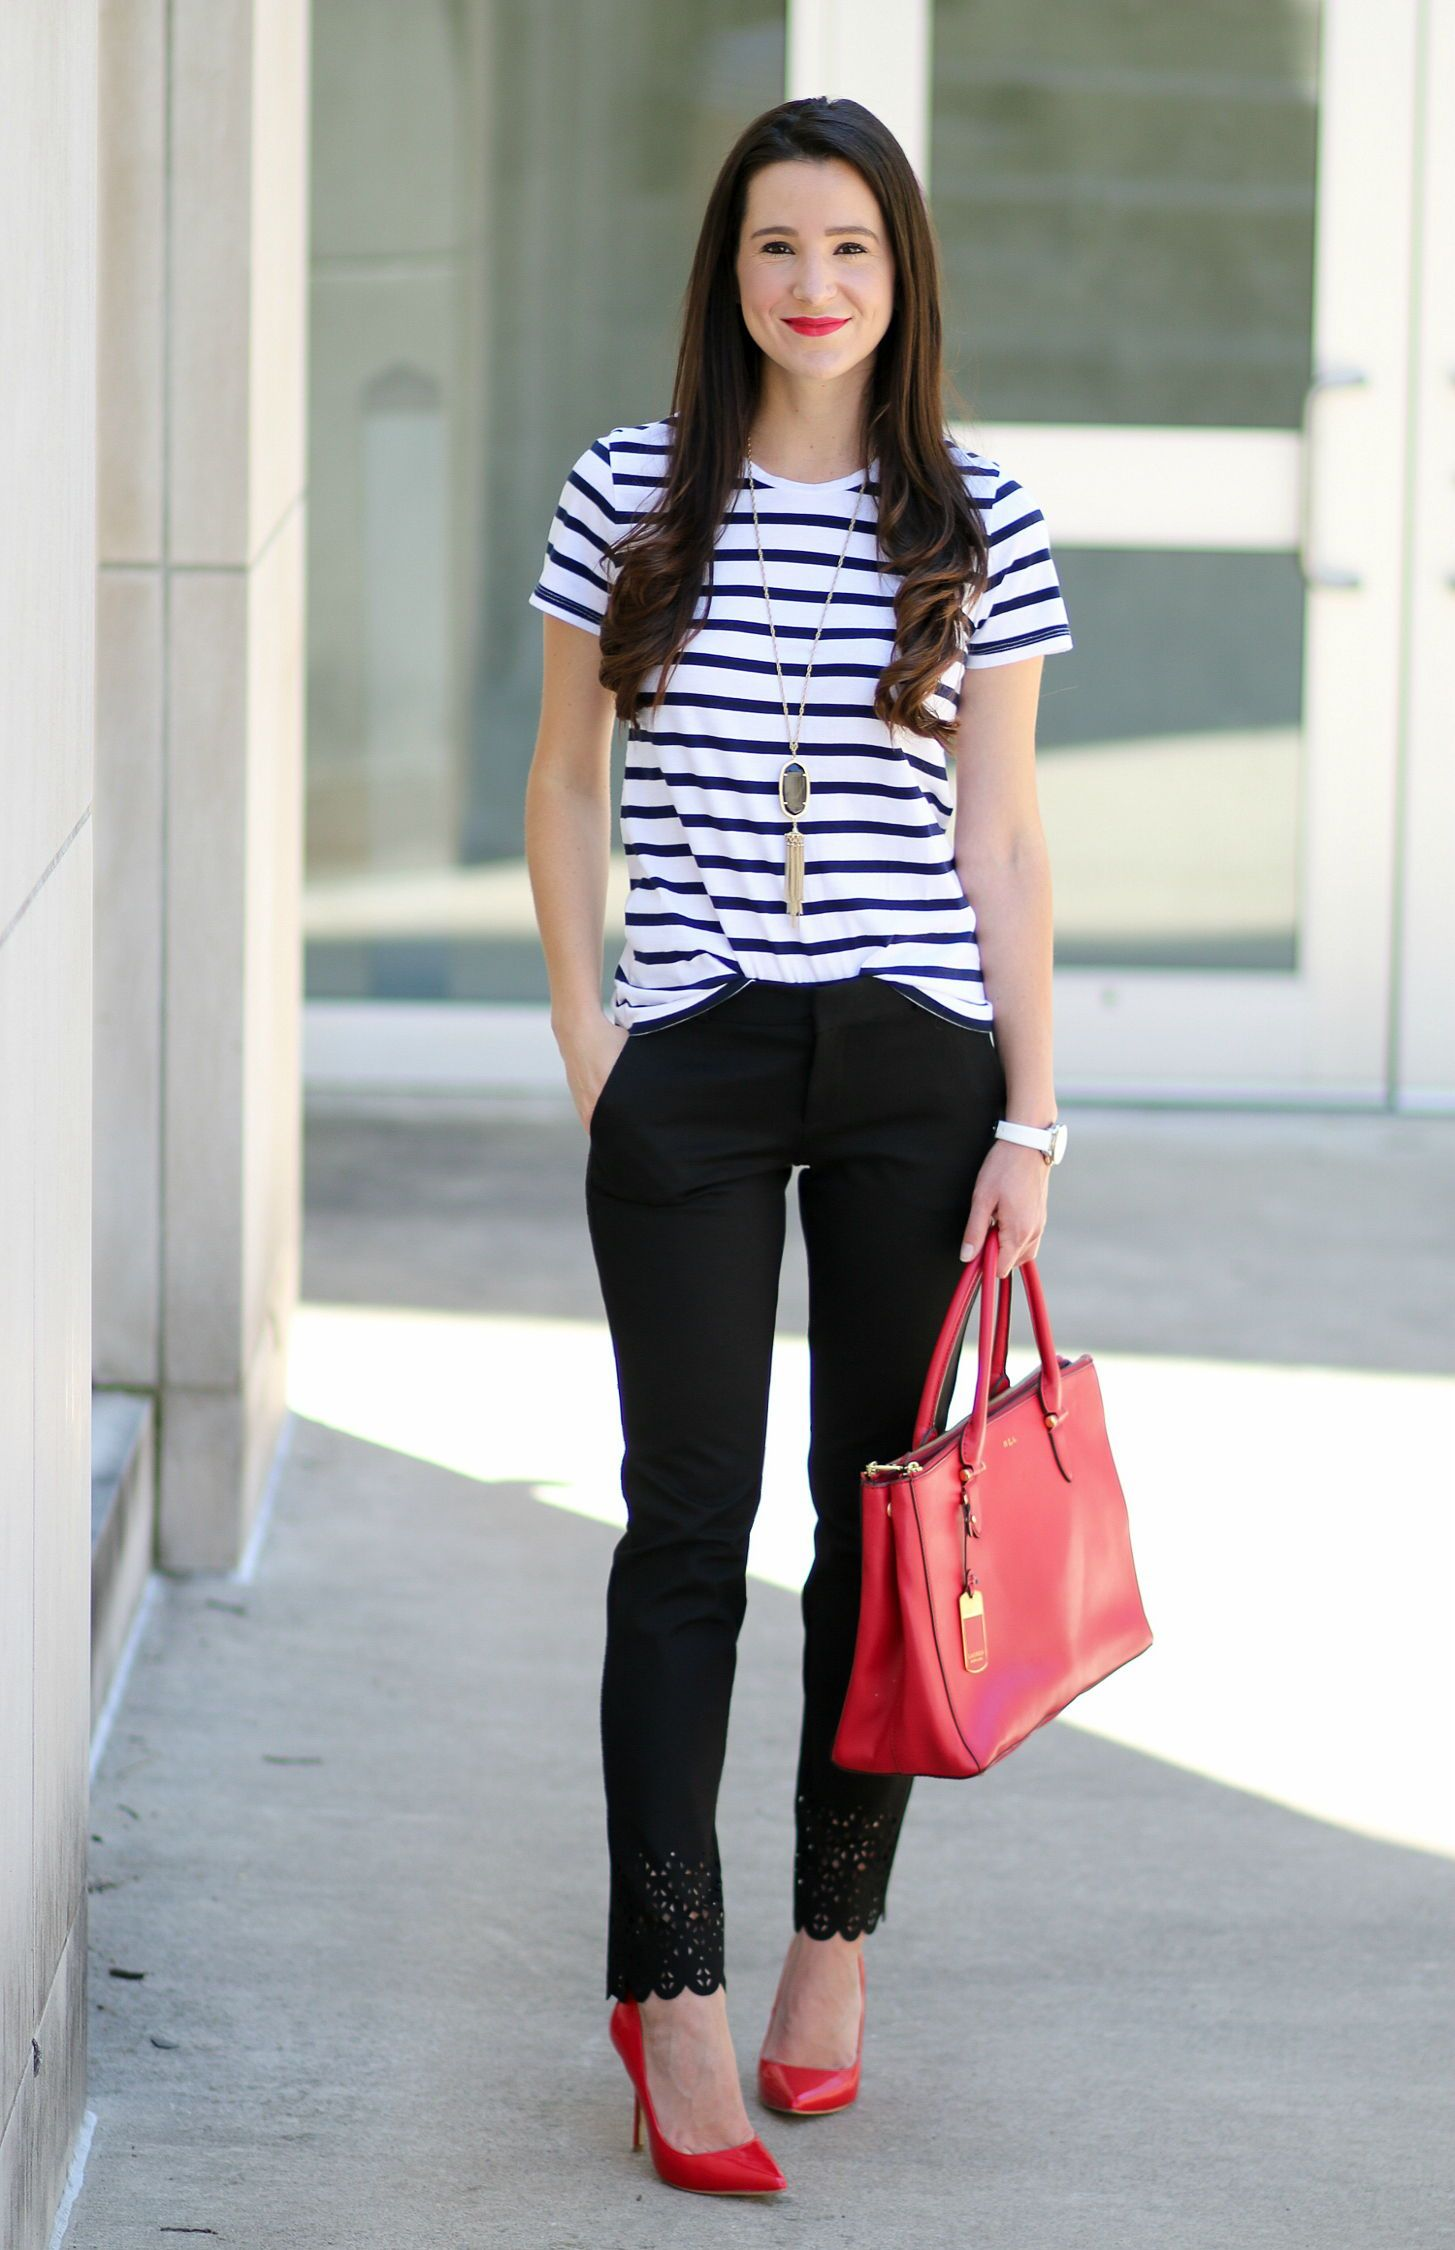 Classic work outfit idea for summer-- Banana Republic